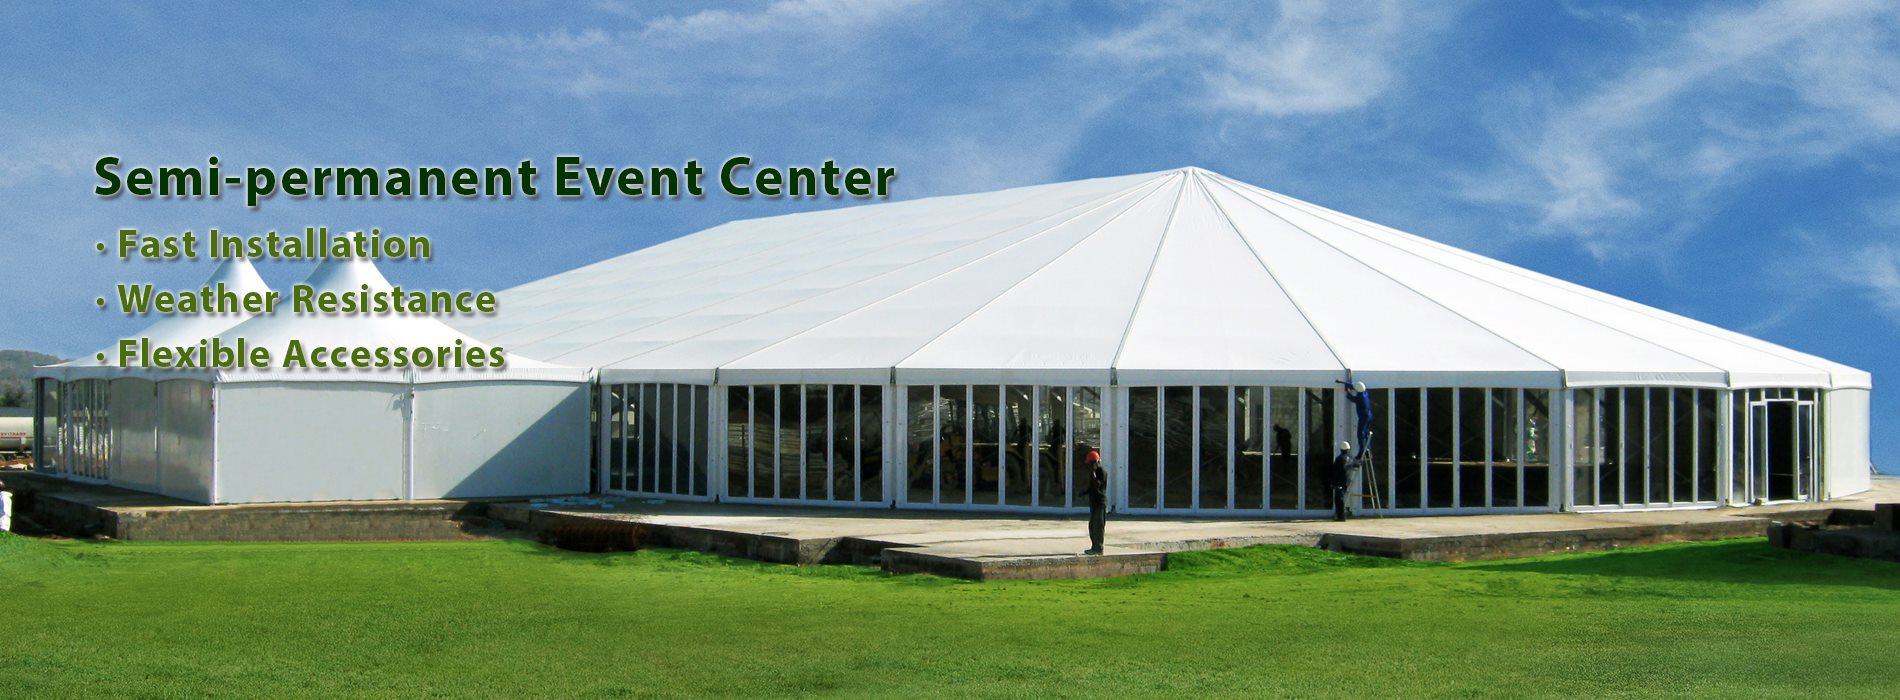 Shelter semi-permanent event tent solution in africa, nigeria 2